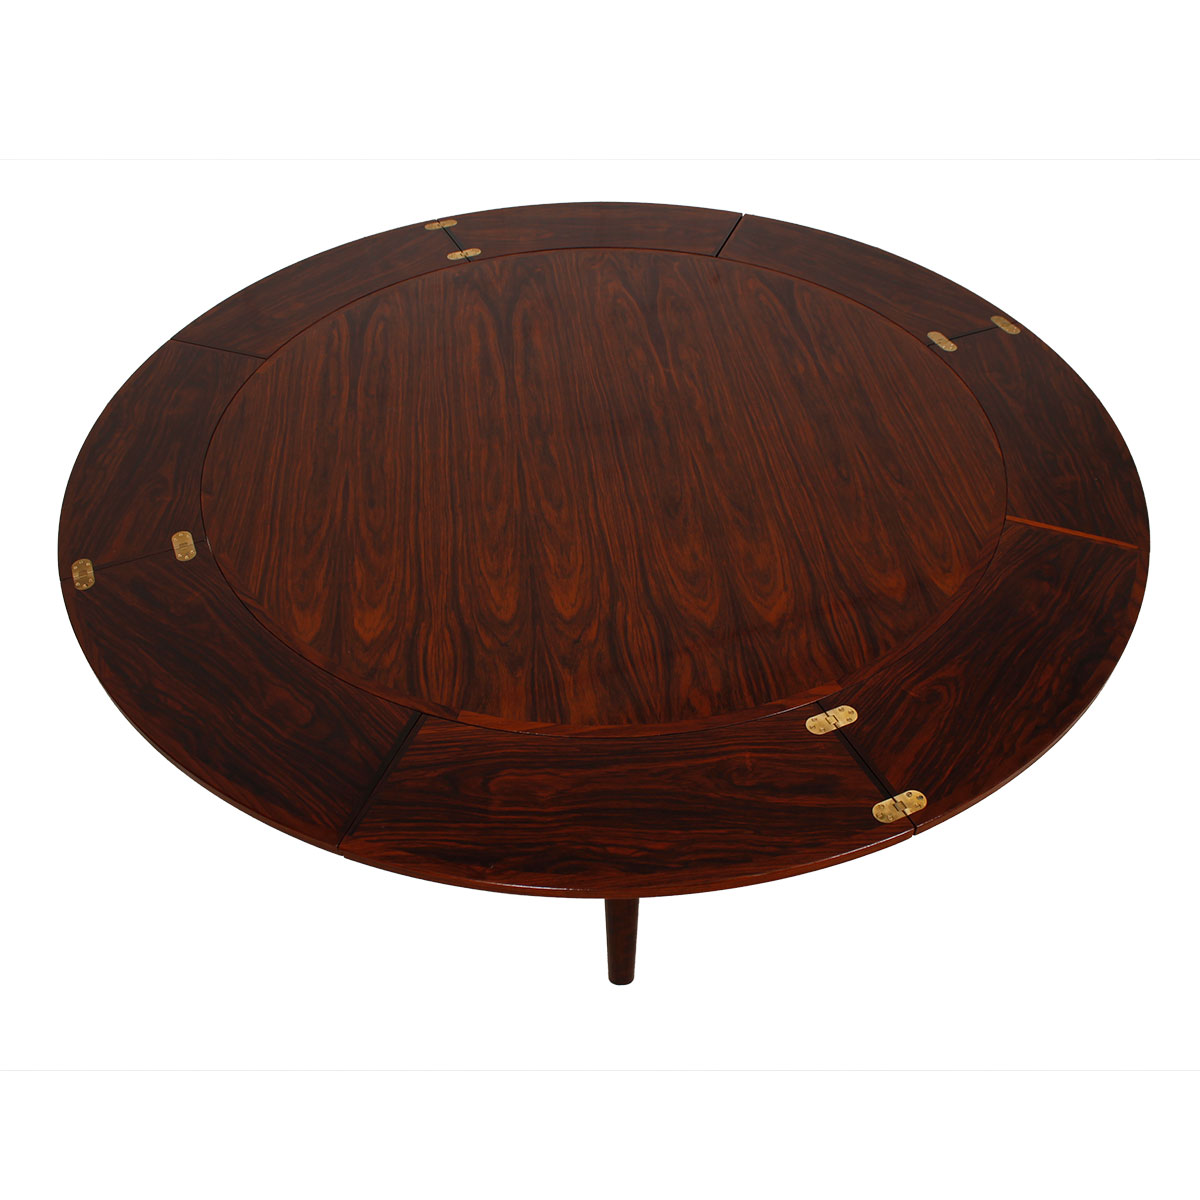 Lotus 'Flip-Flap' Danish Rosewood Expanding Dining Table by Dyrlund